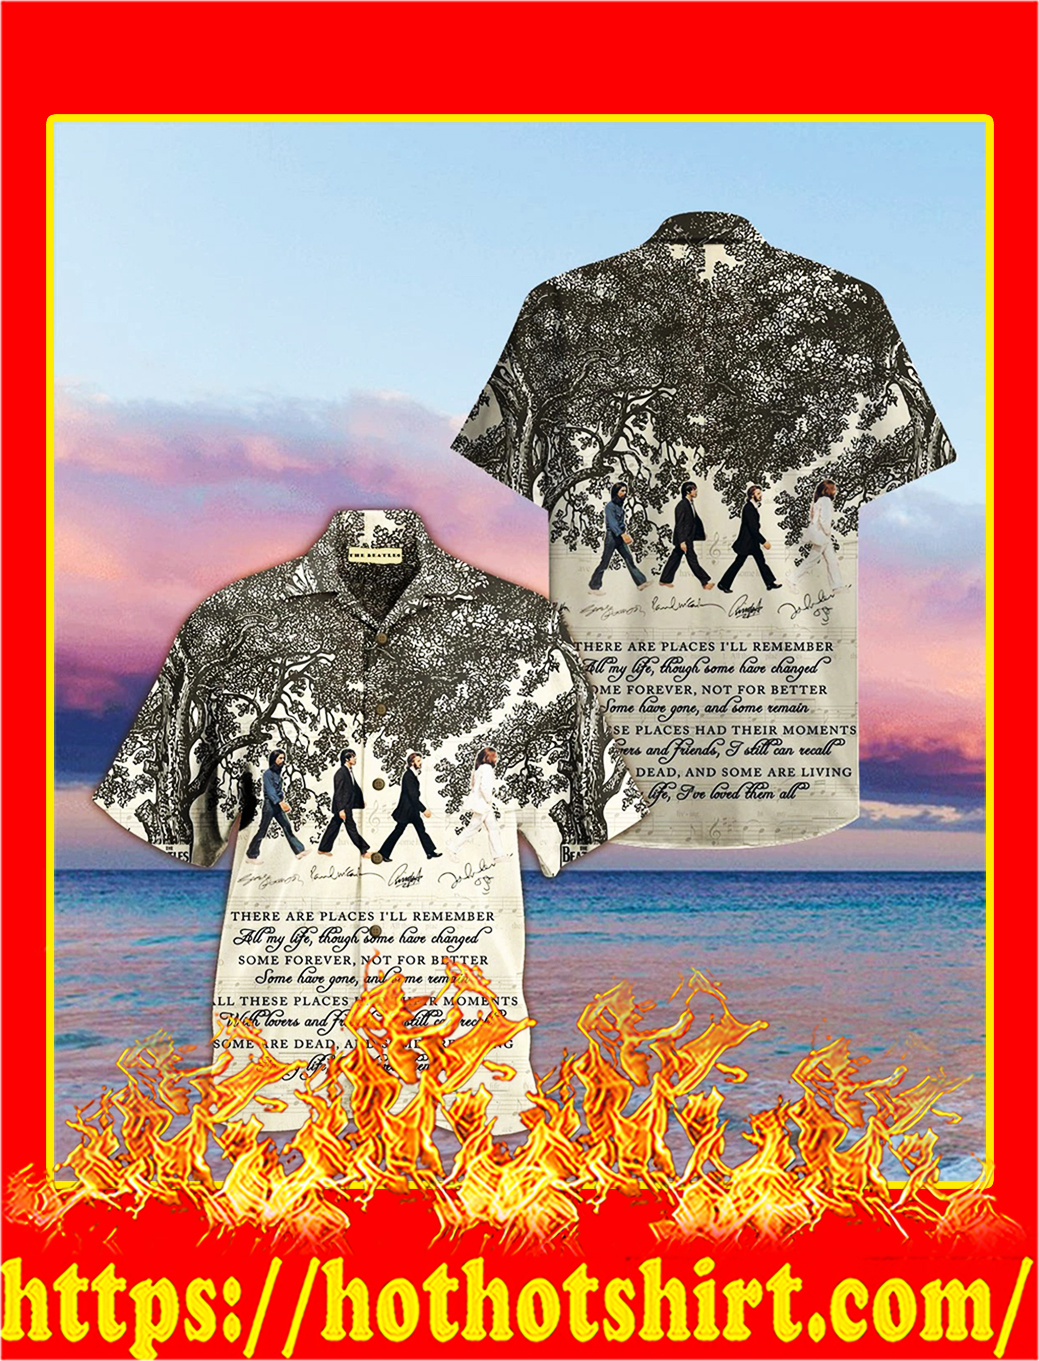 The beatles song lyrics there are places i'll remember hawaiian shirt- S